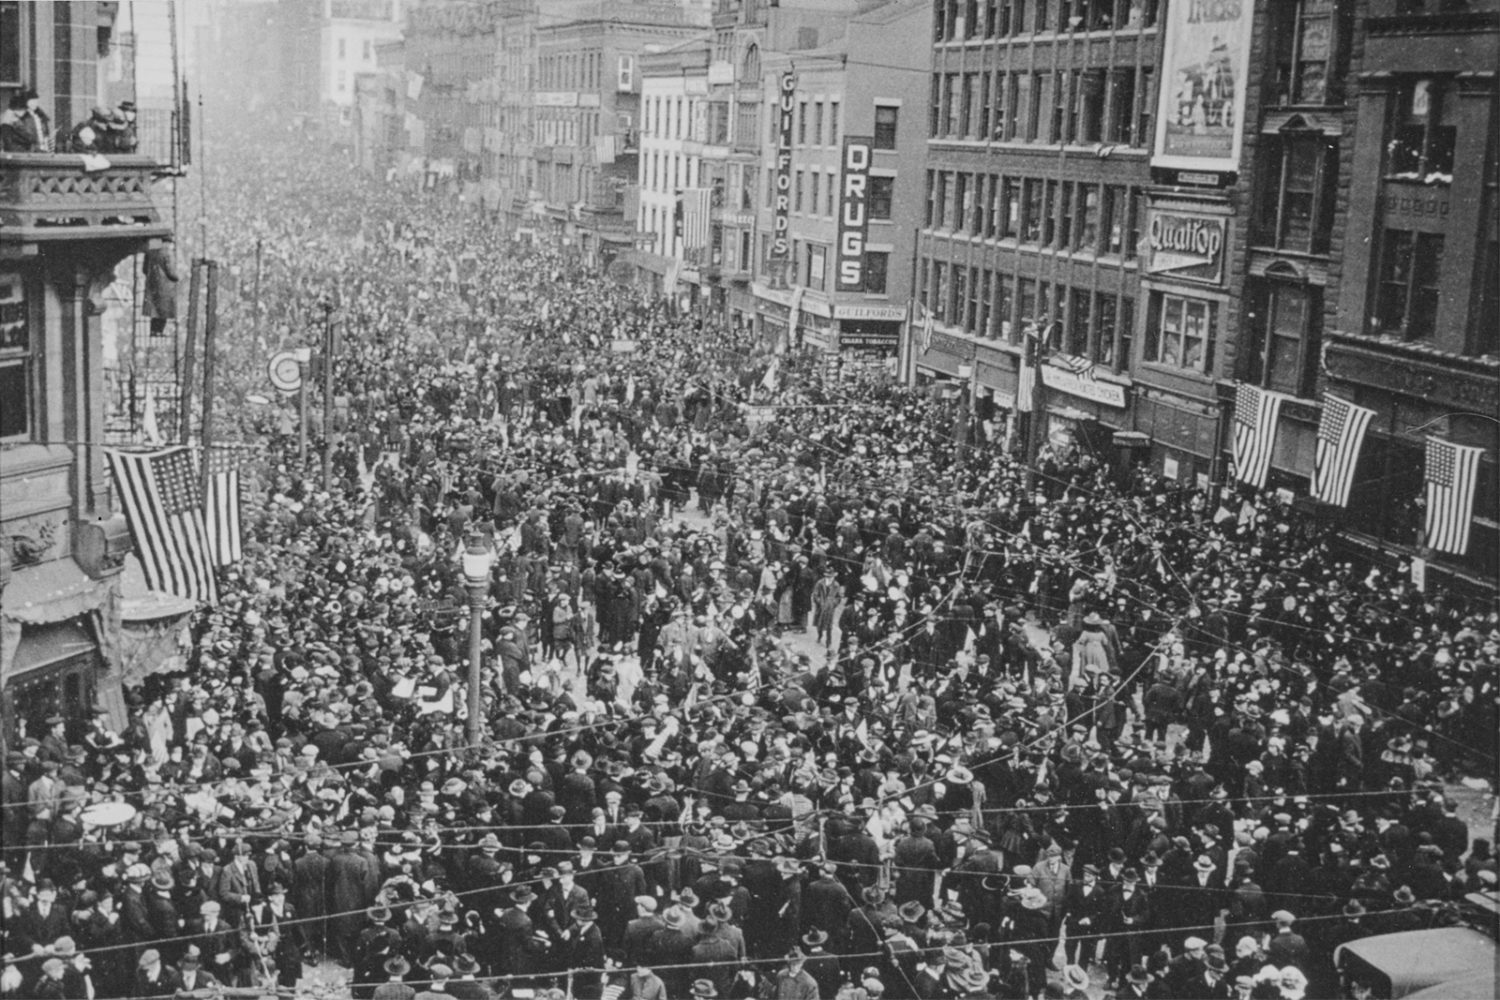 Rochester residents celebrate the end of World War I on Armistice Day, Nov. 11, 1918. – photo from City of Rochester